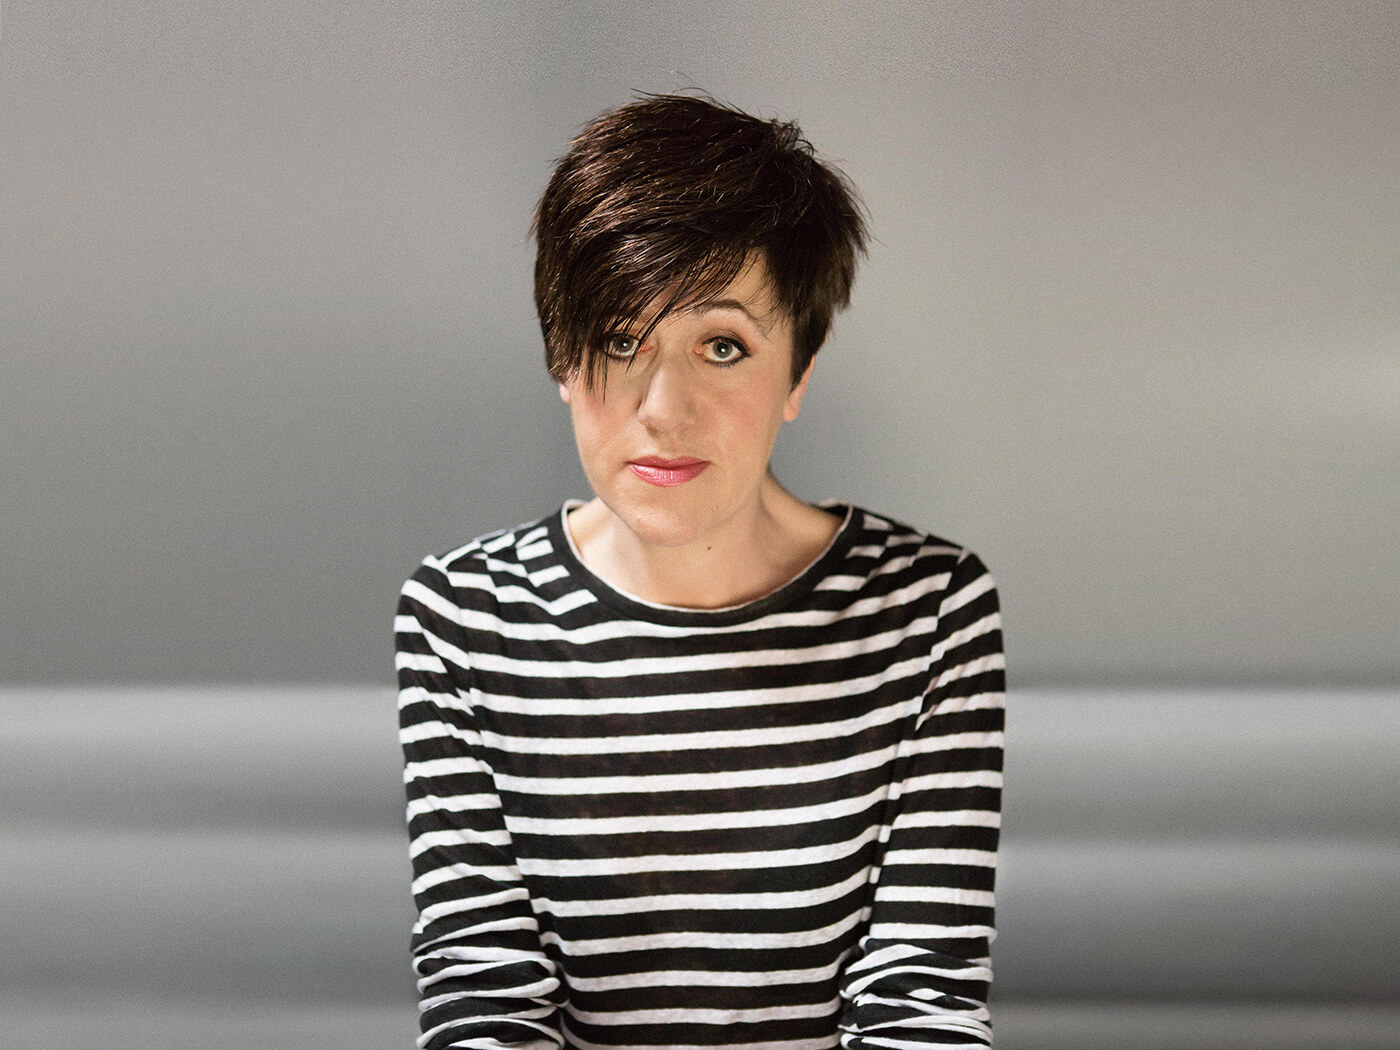 Send us your questions for Tracey Thorn